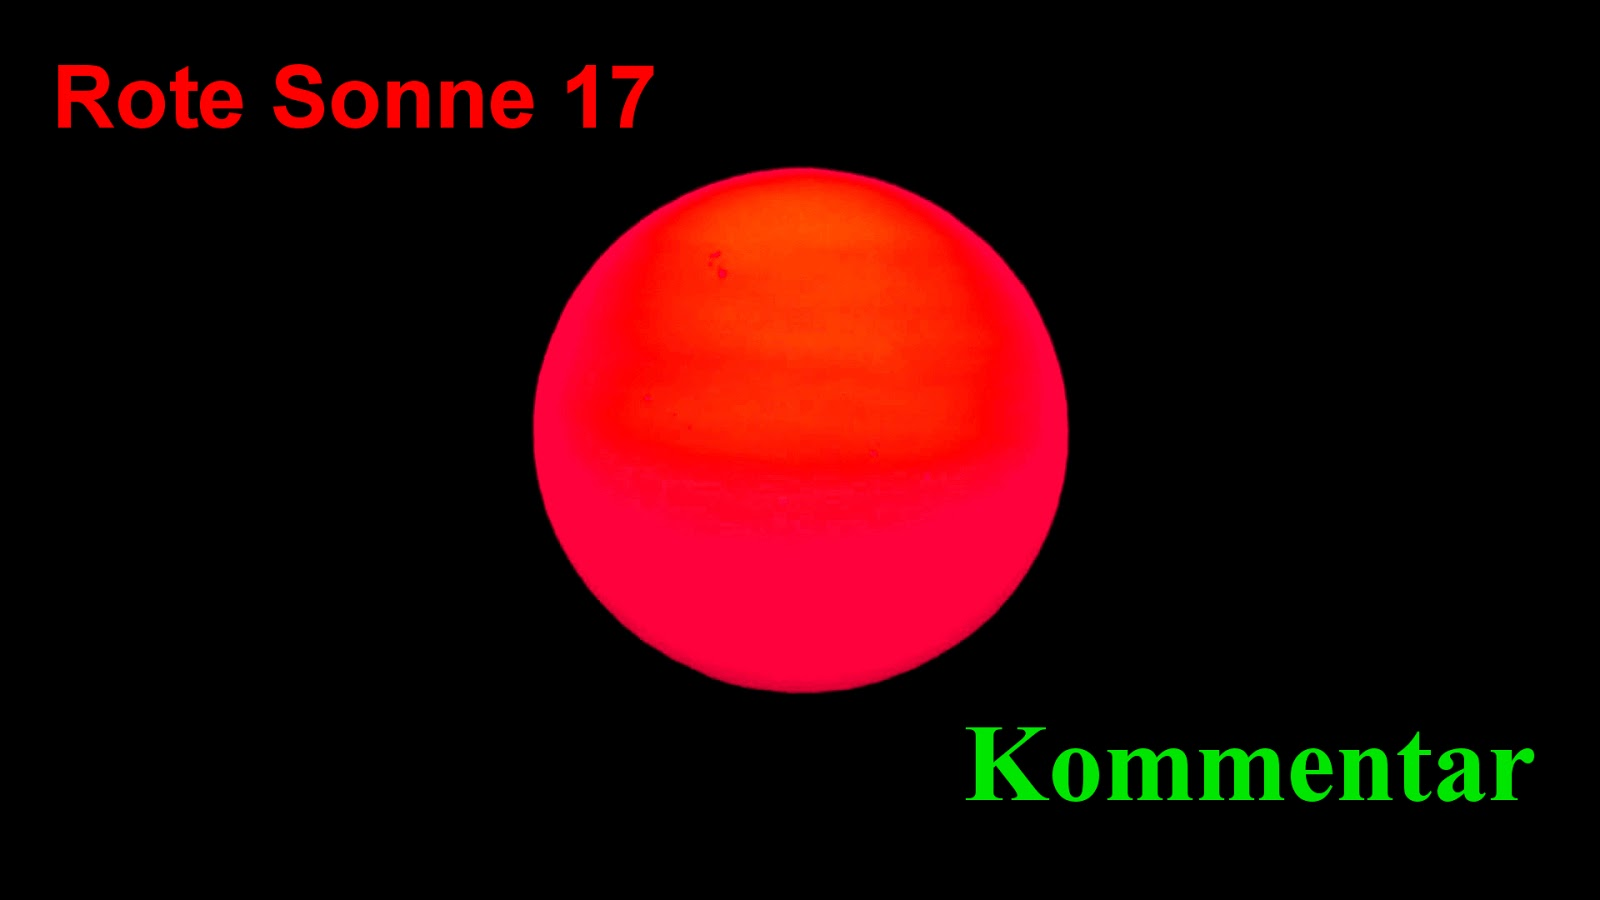 Rote Sonne 17: Rote Sonne 17 - jetzt noch roter!